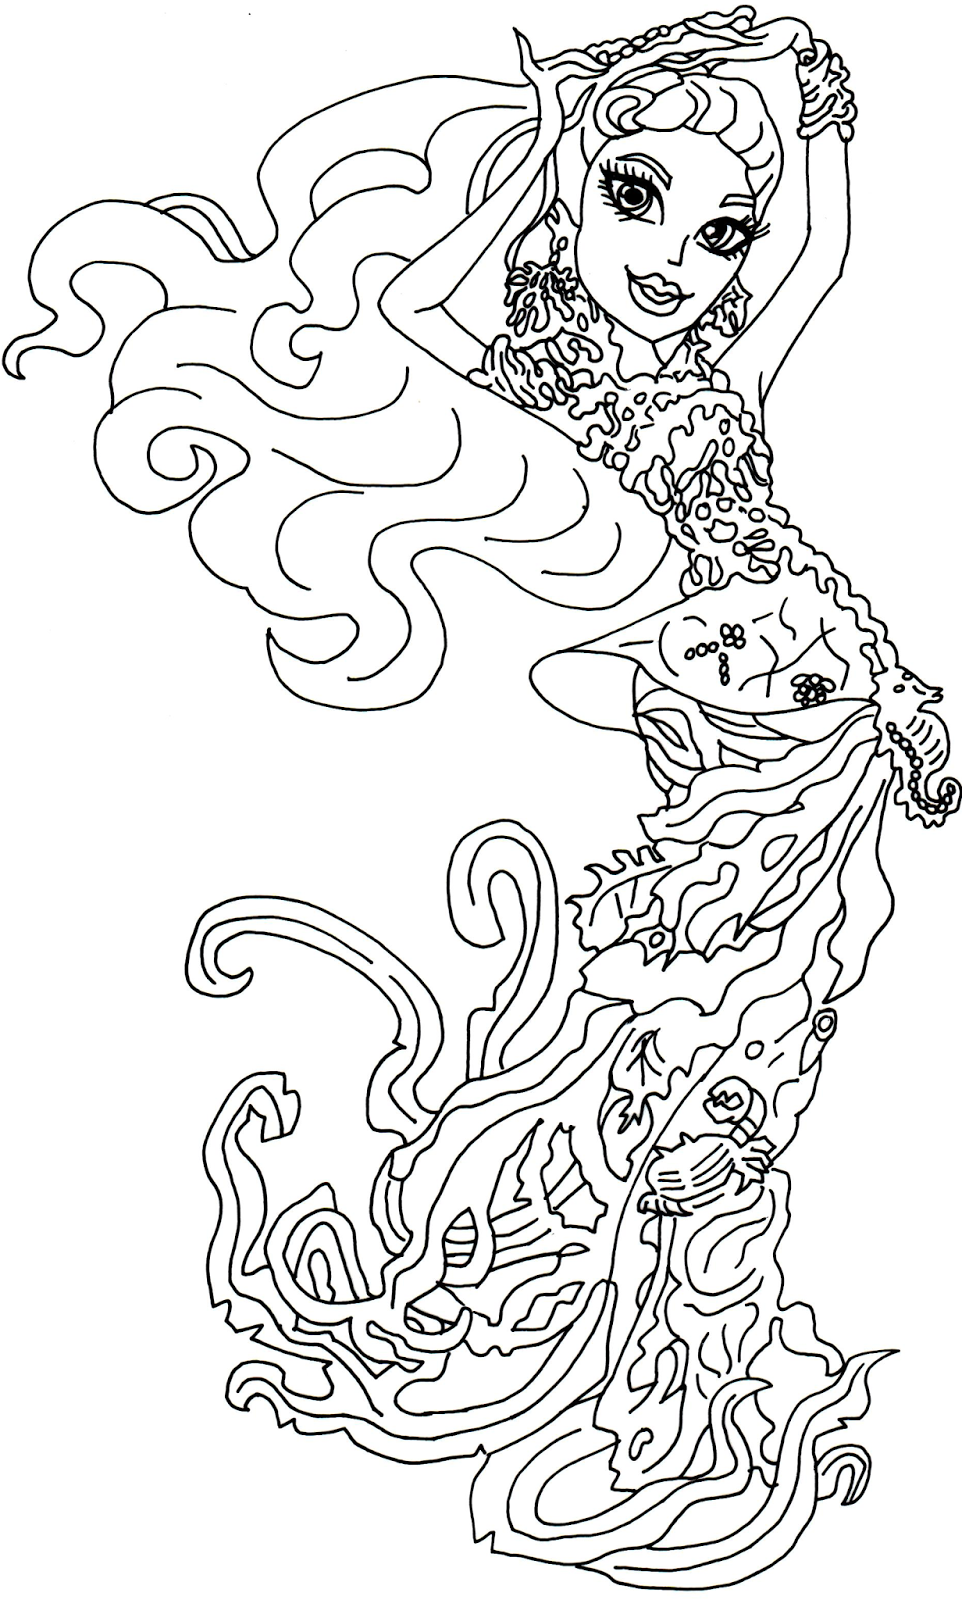 Free Printable Monster High Coloring Pages: Posea Reef